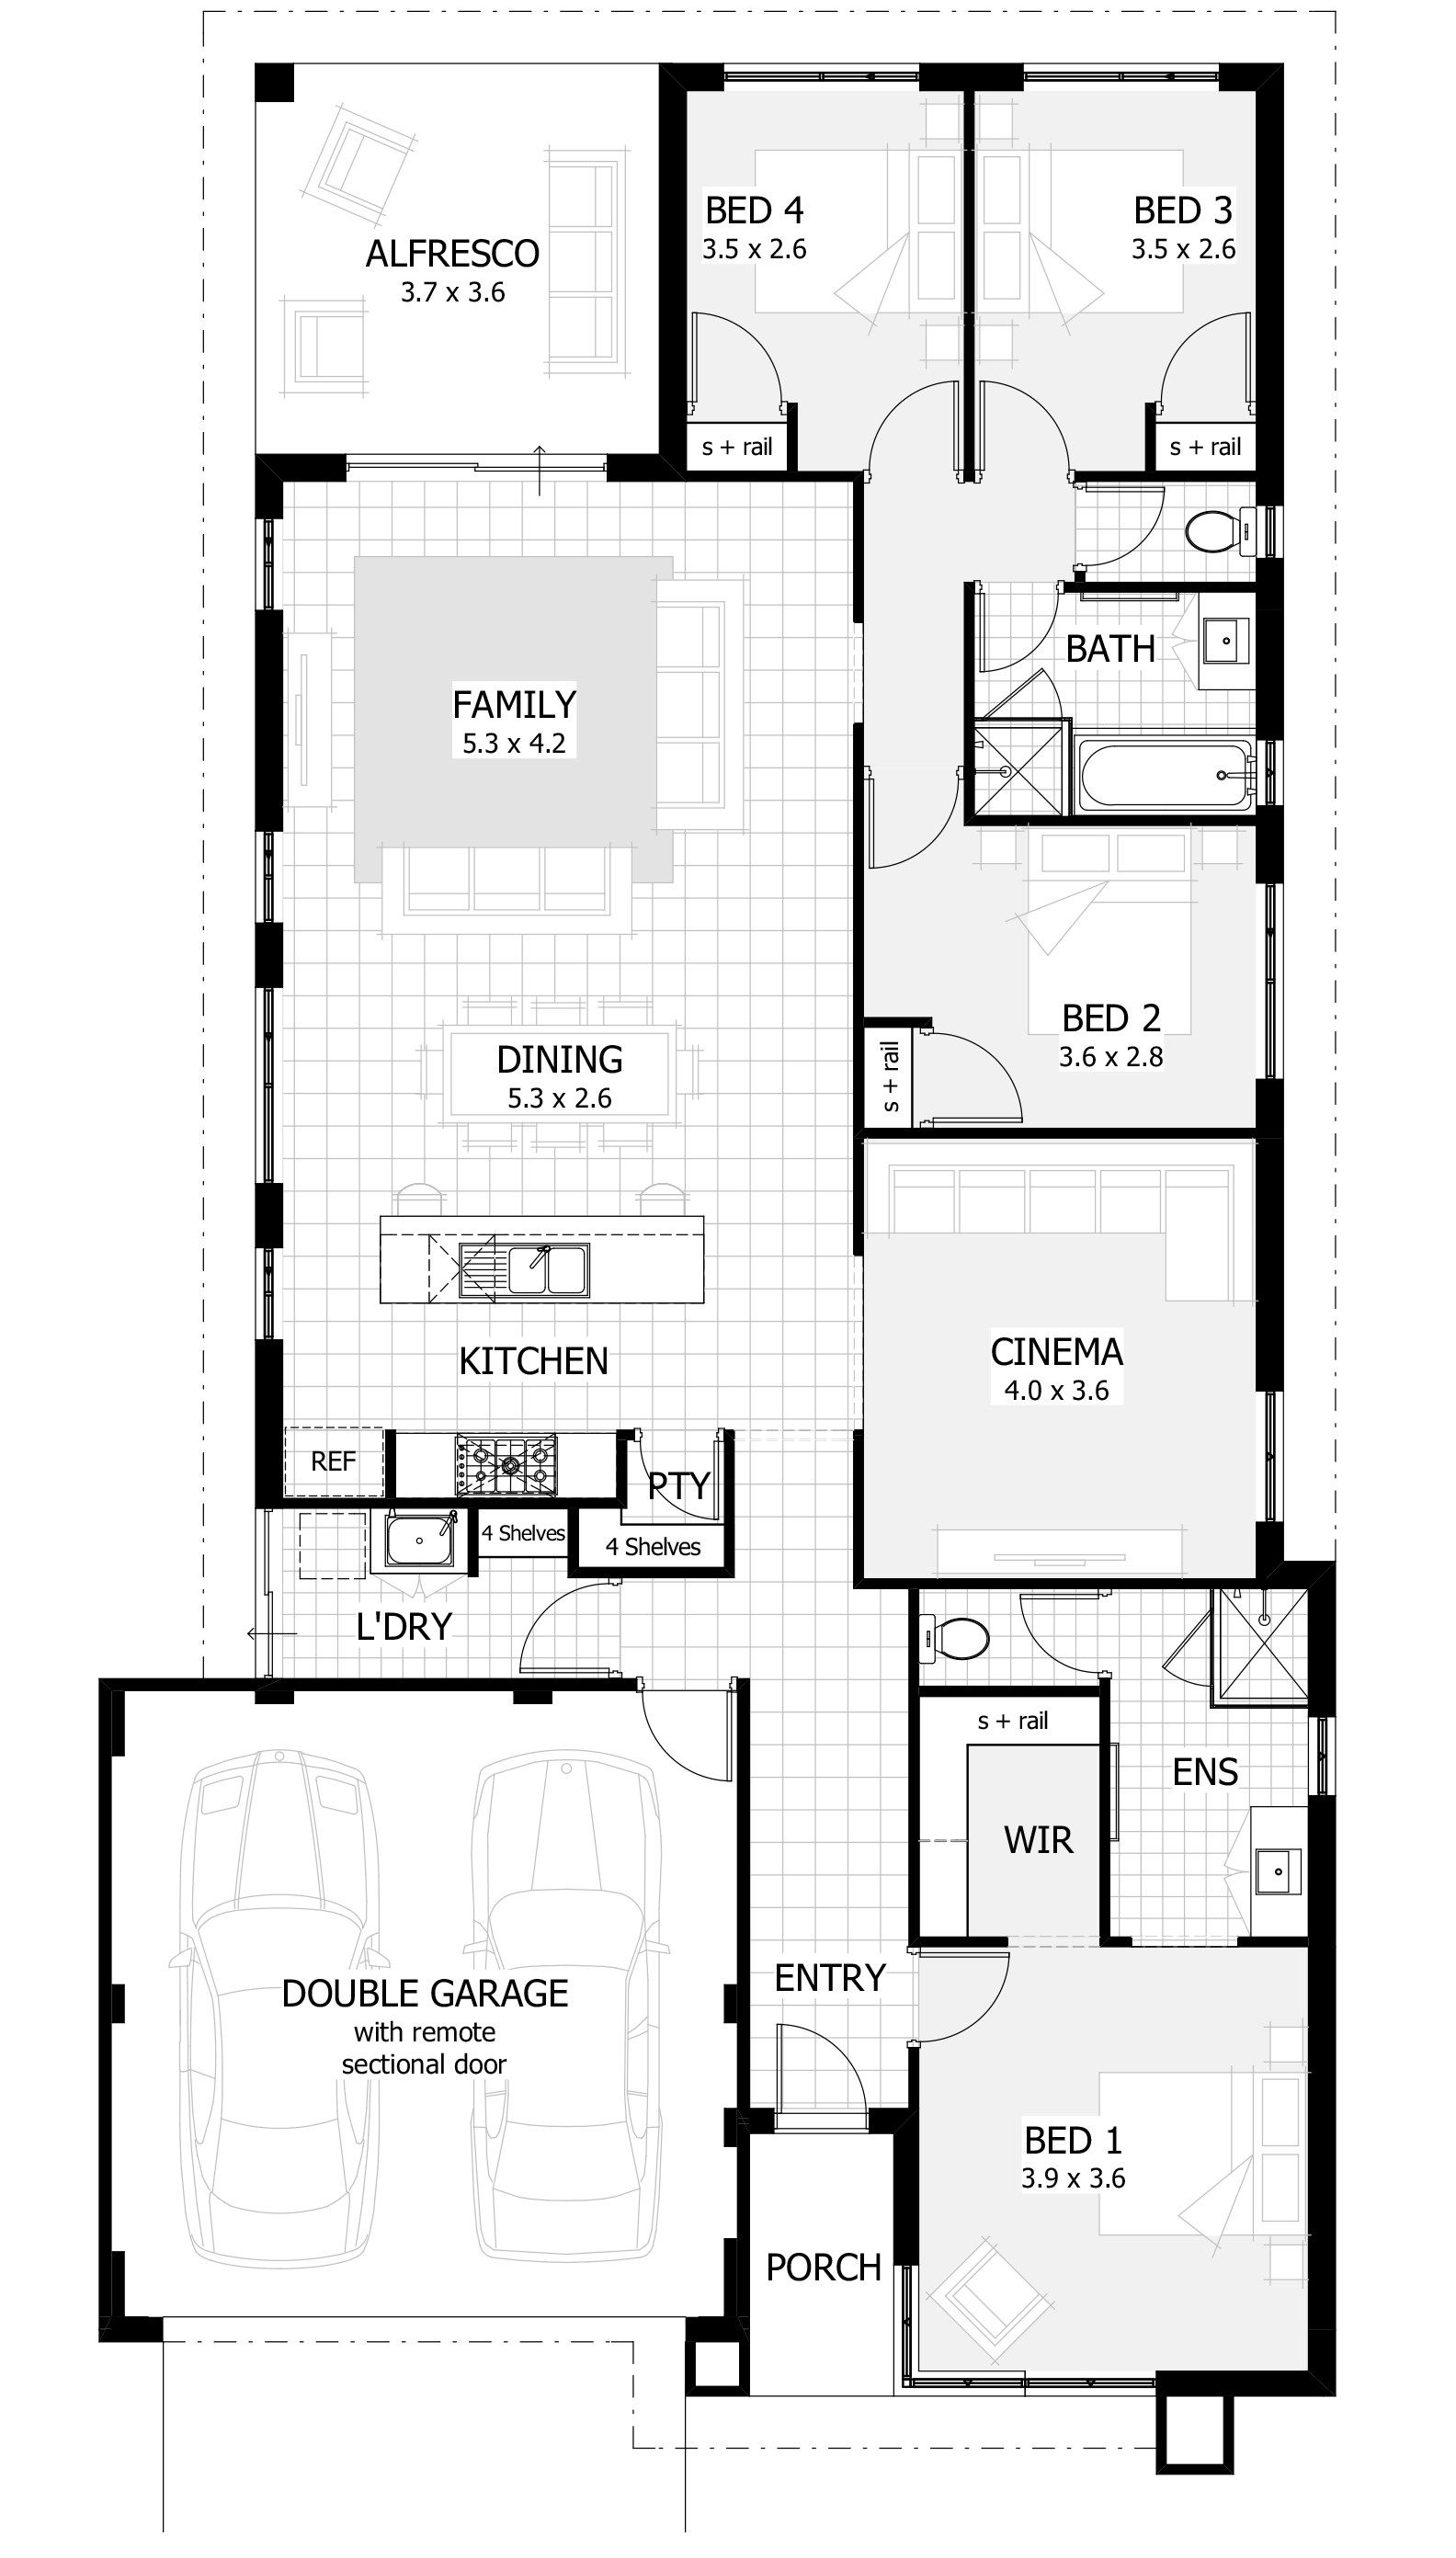 Home Single Story Floor Plans Small Lot Homes Plans Perth